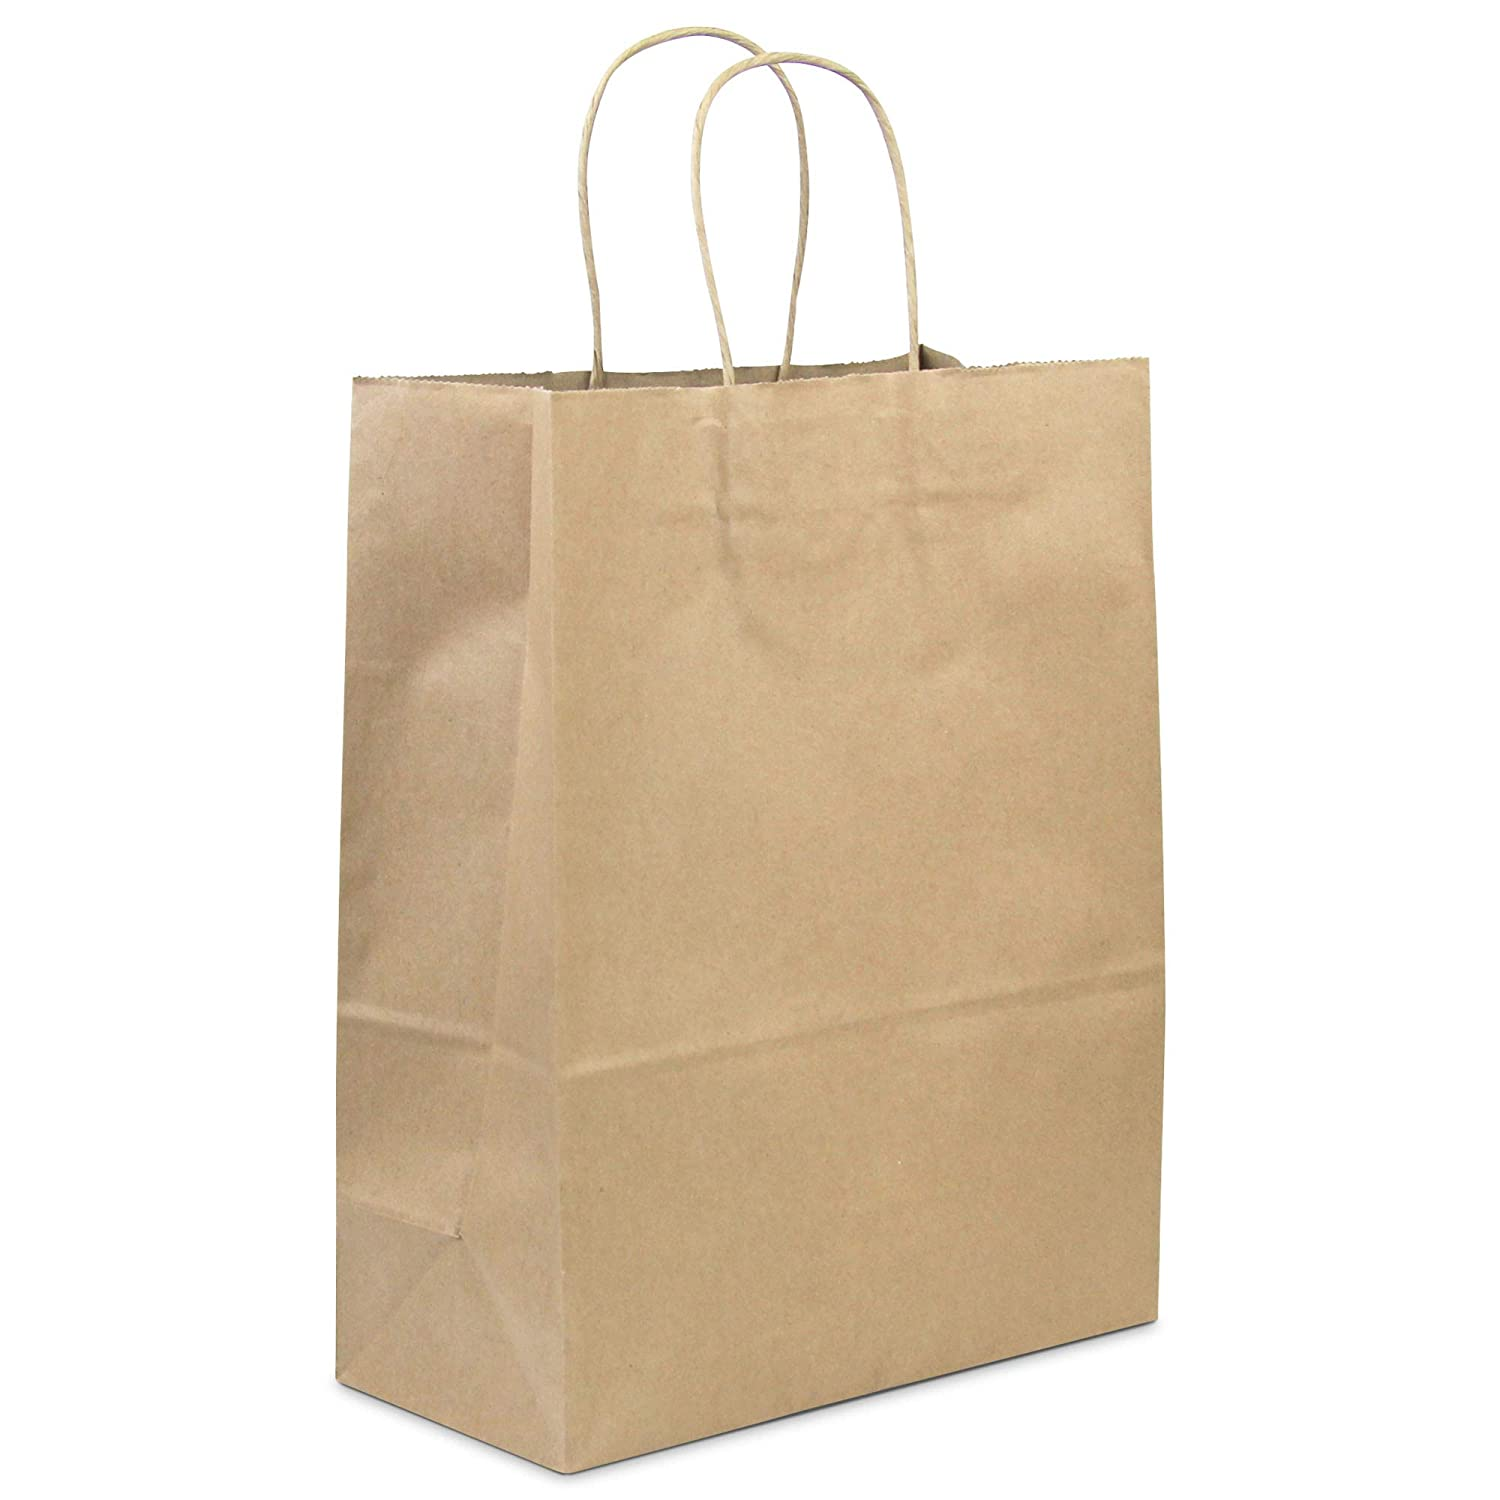 "[50 Pack] Heavy Duty Kraft Paper Bags with Handles 13 x 10 x 5"" 12 LB Twisted Rope Retail Shopping Gift Durable Natural Brown Barrel Sack"